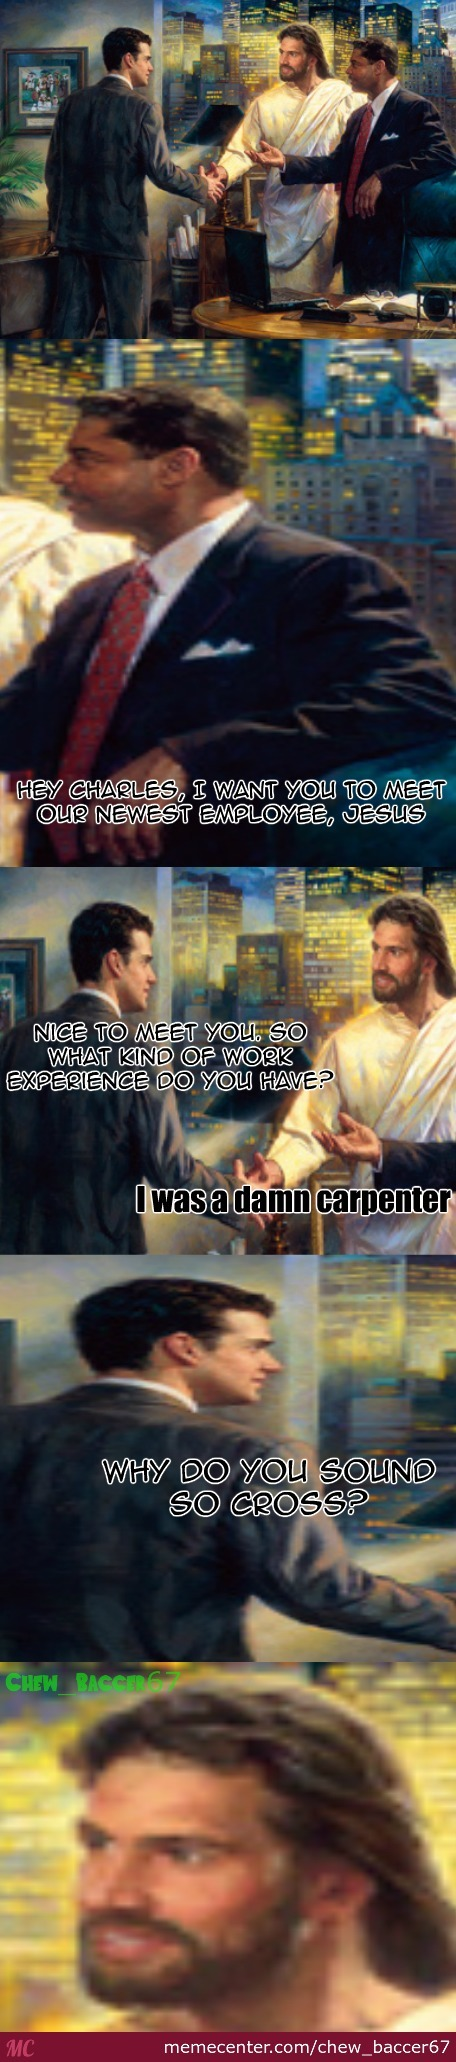 The Economy Must Be Really Bad. Even Jesus Is Getting A Job